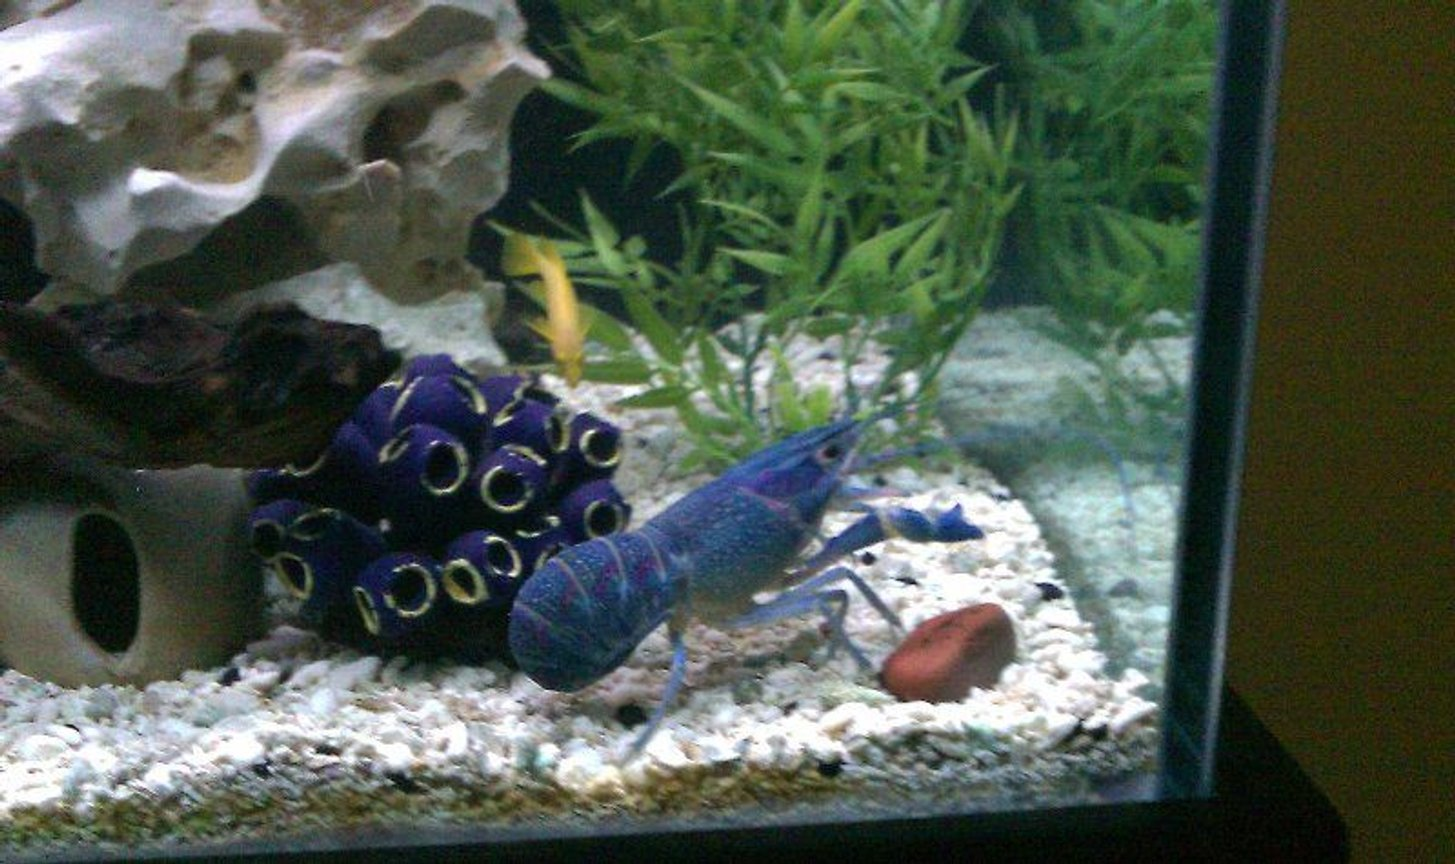 fish tank picture - Blue Cobalt lobster